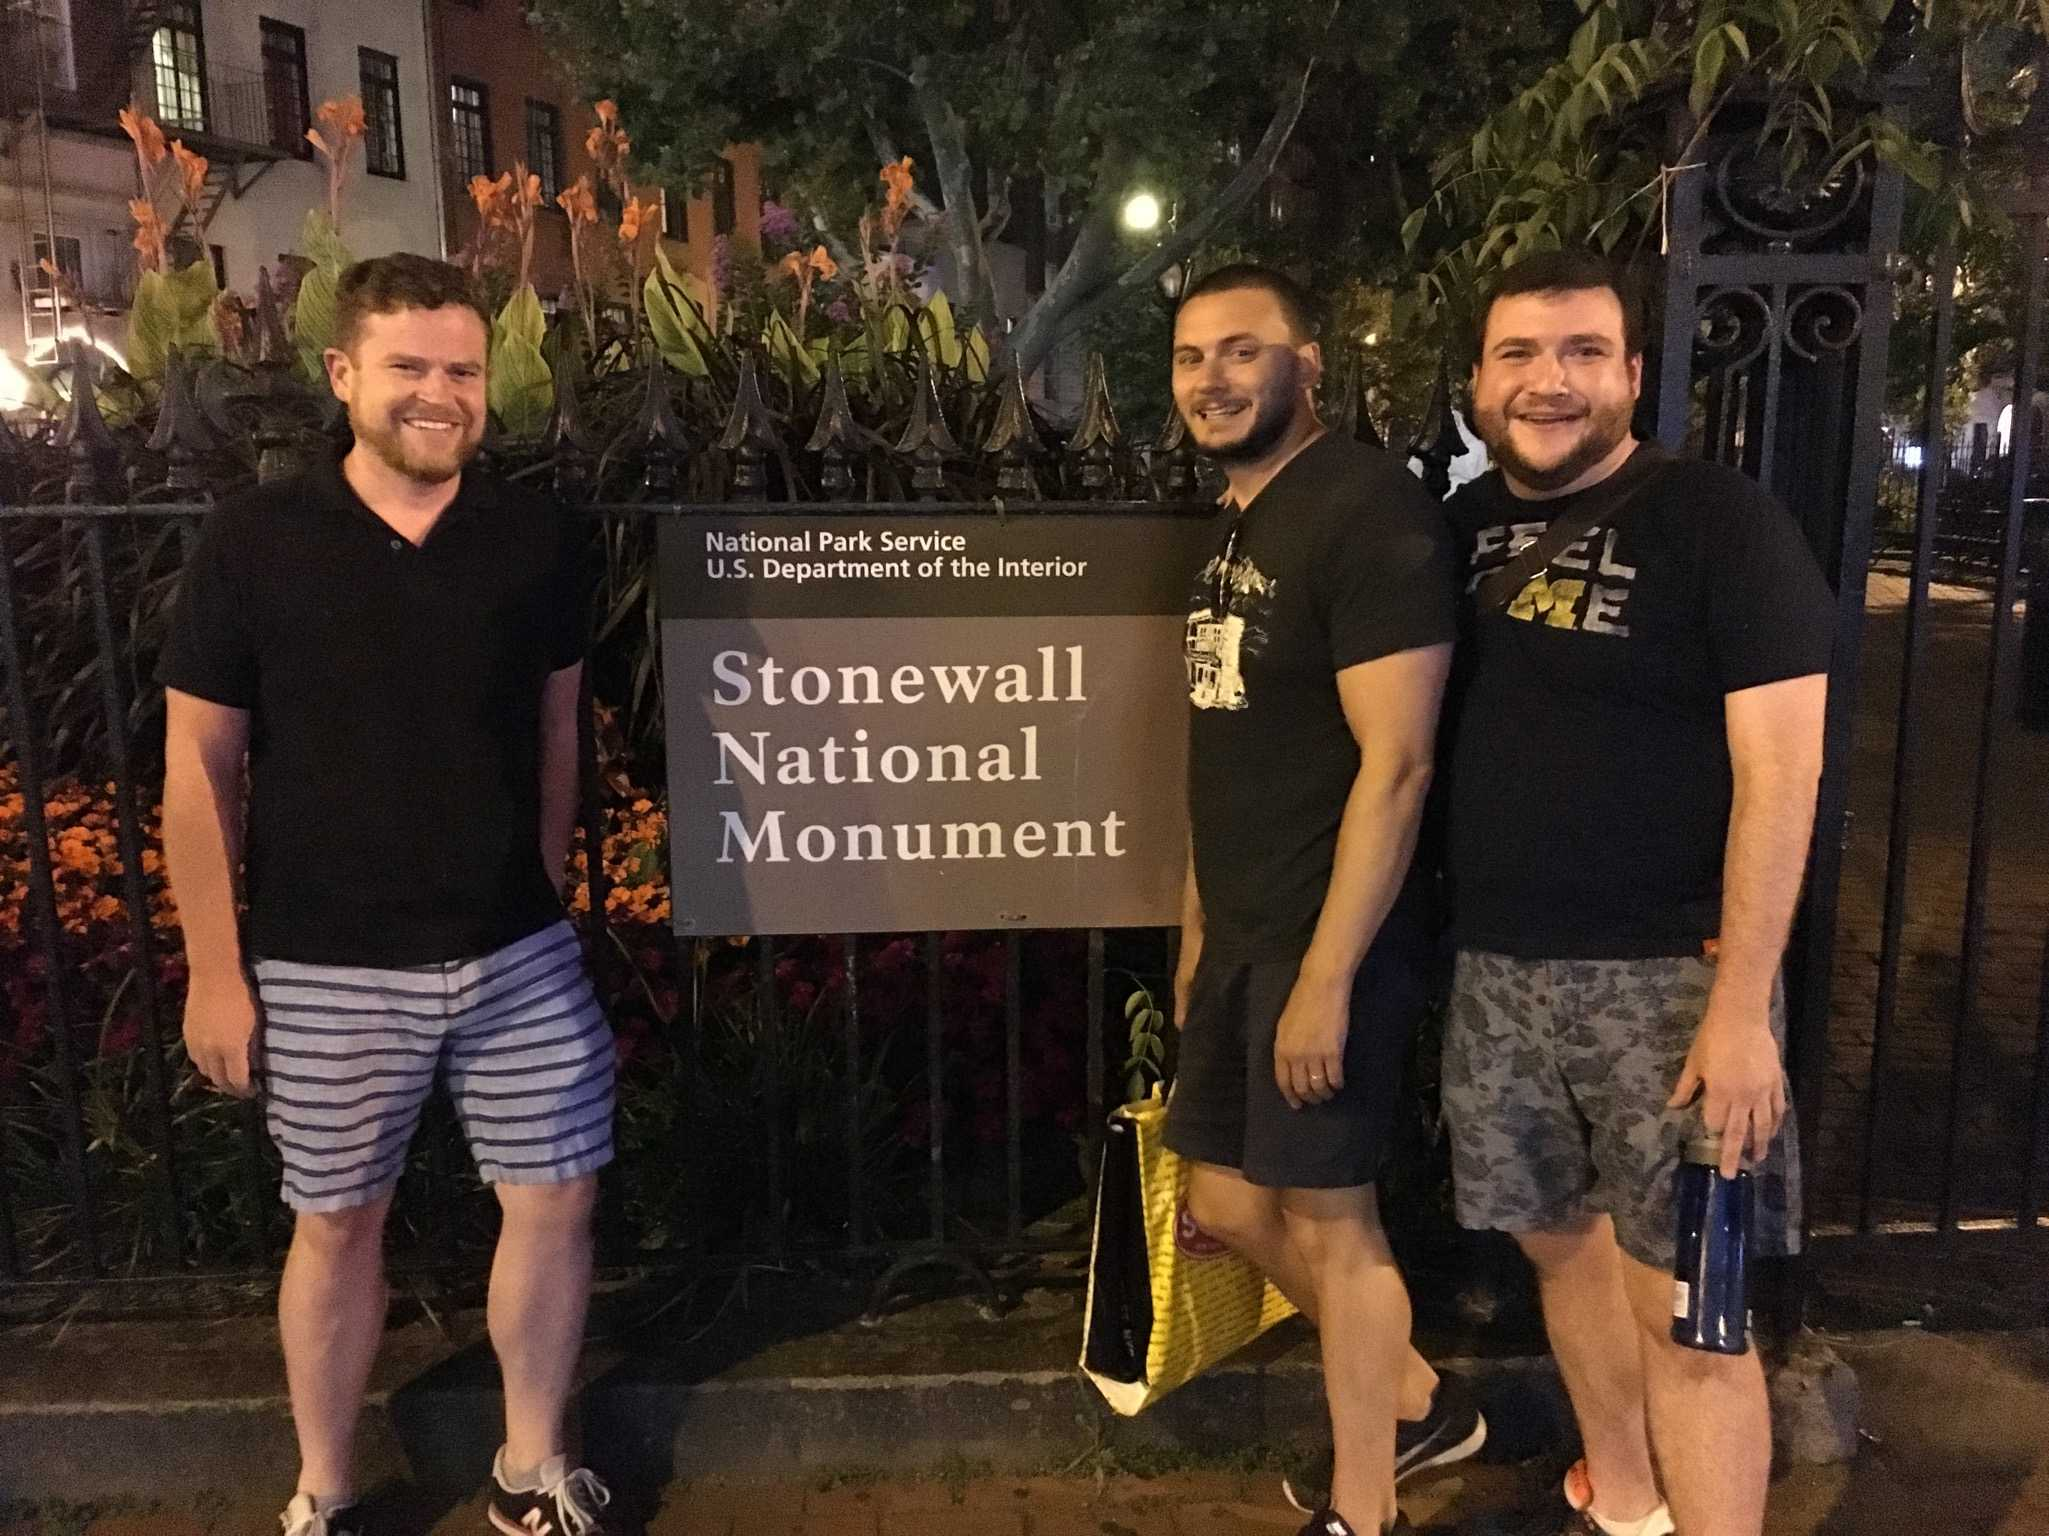 Gallagher (left) with two friends soon after President Obama designated the Stonewall National Monument, which commemorates the birth of the modern gay civil rights movement.